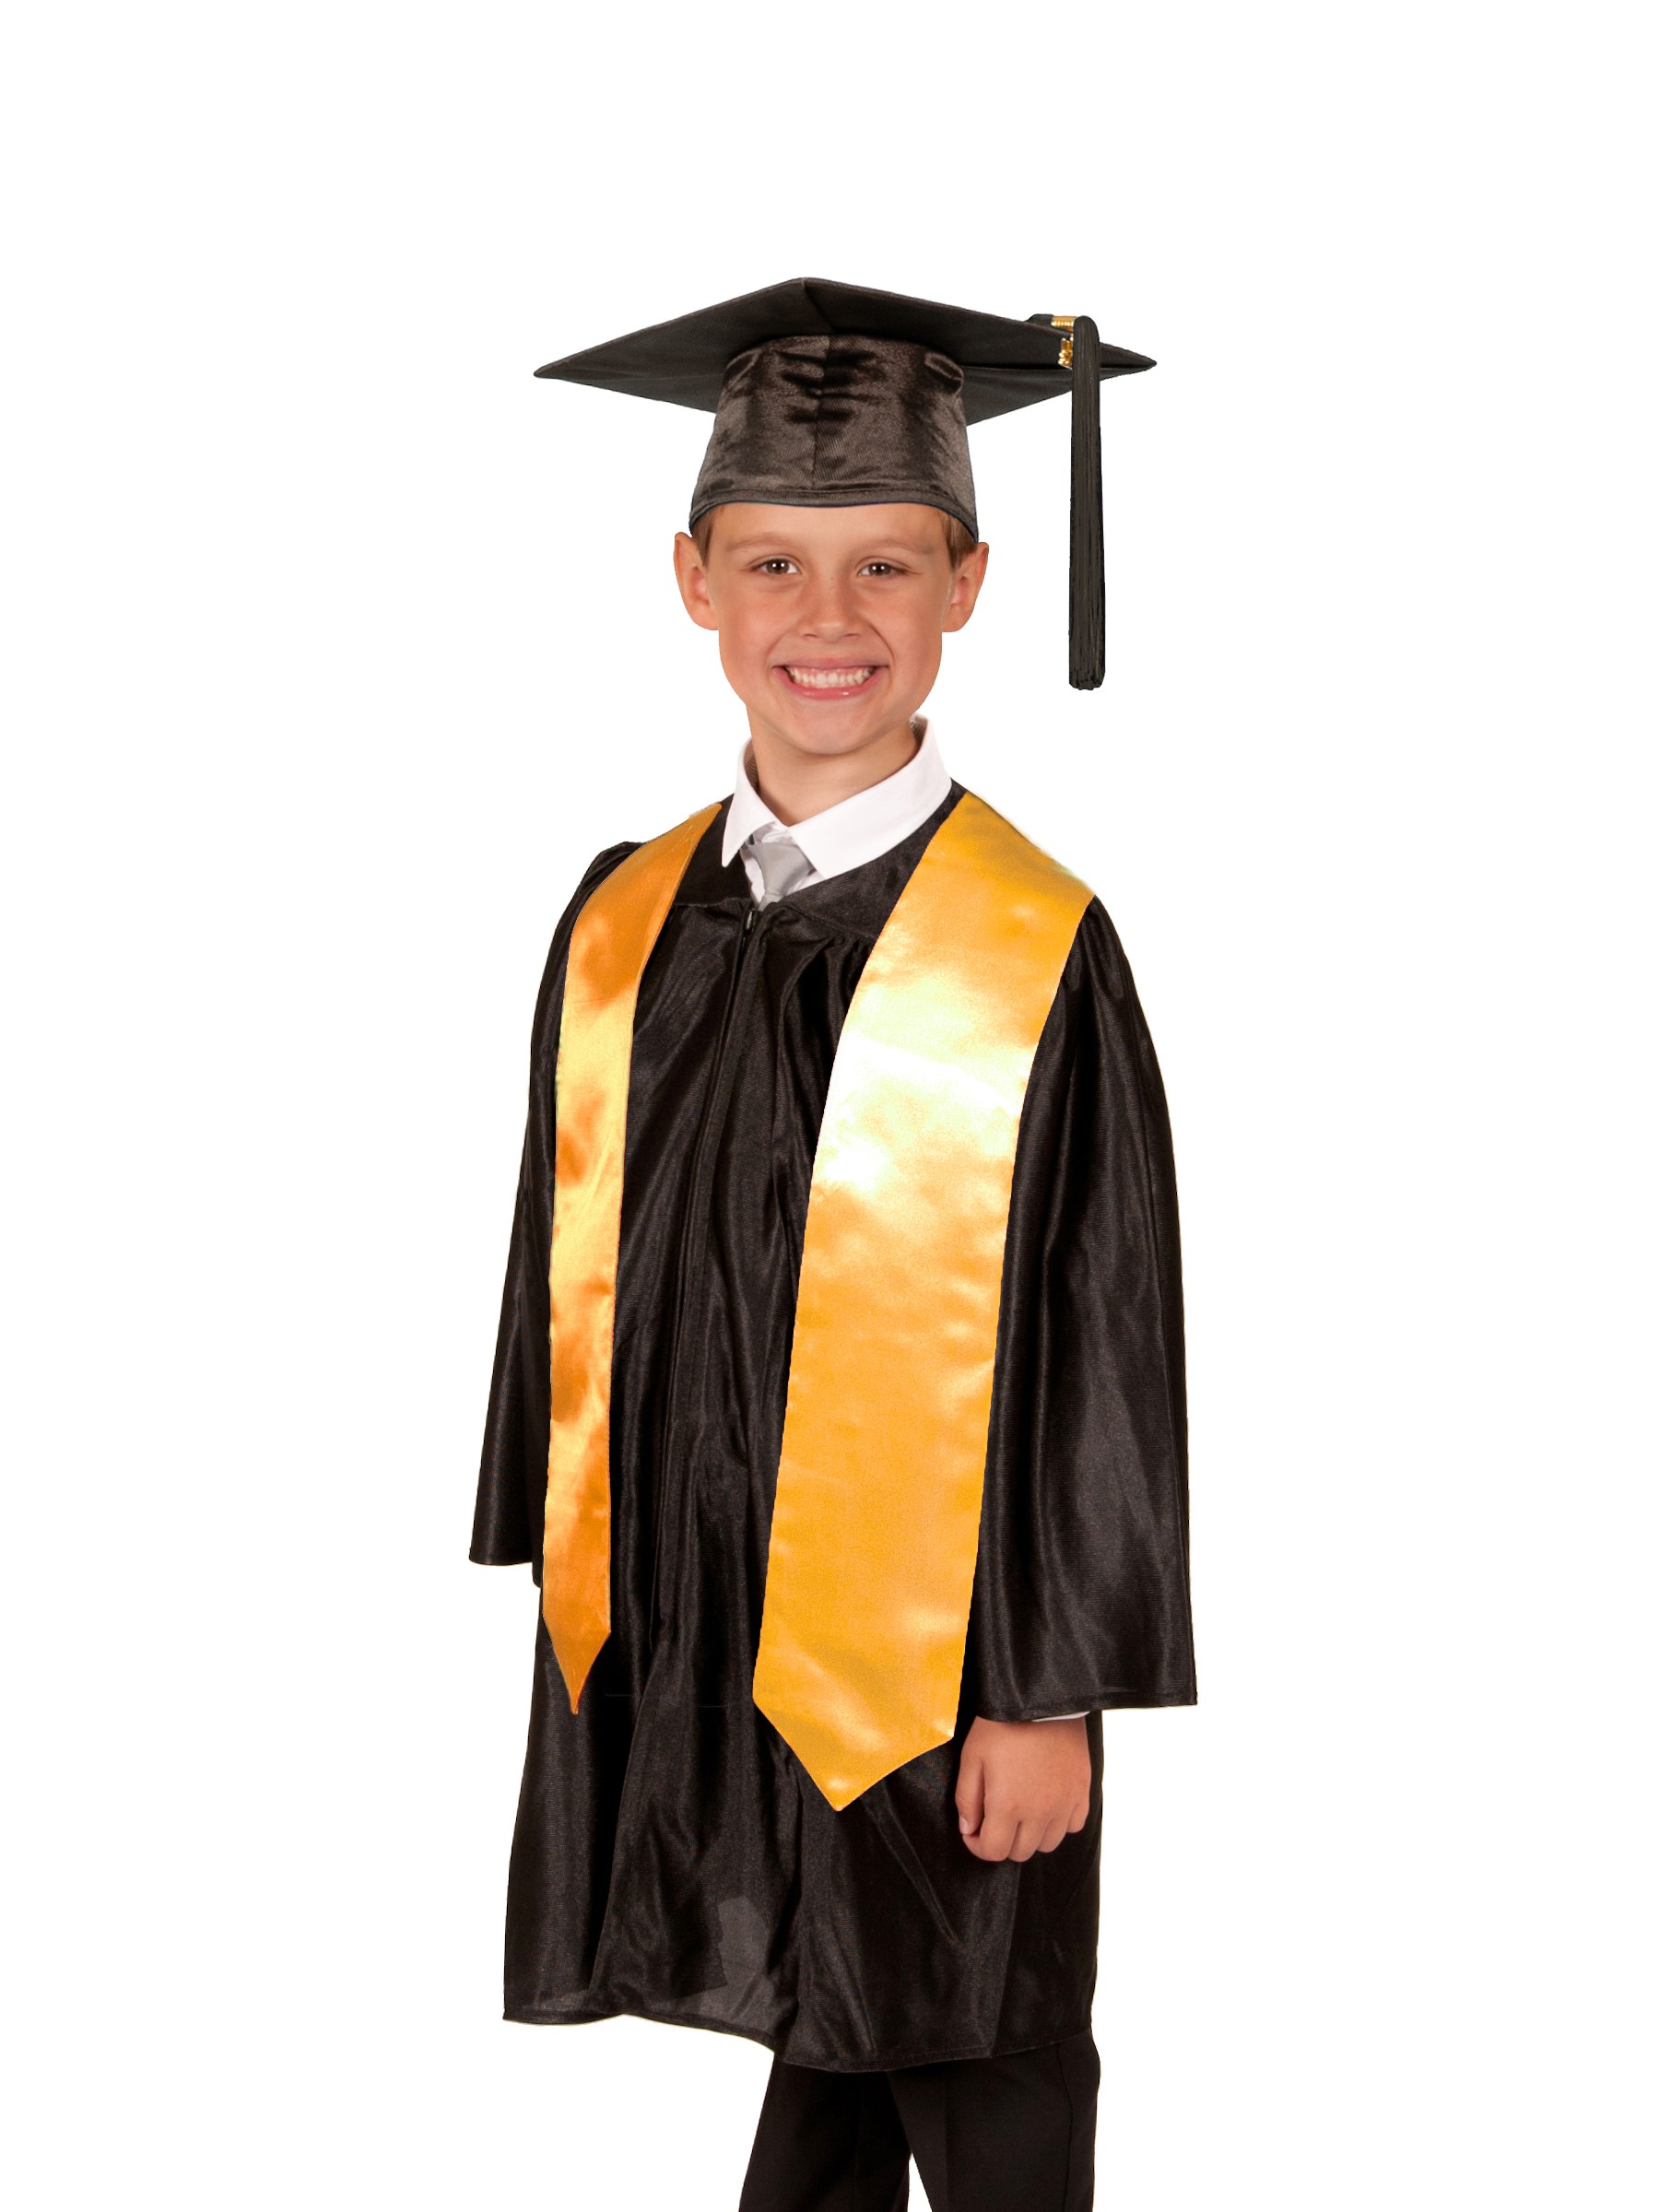 Shiny Graduation Gown Cap and Stole for your Primary Graduation